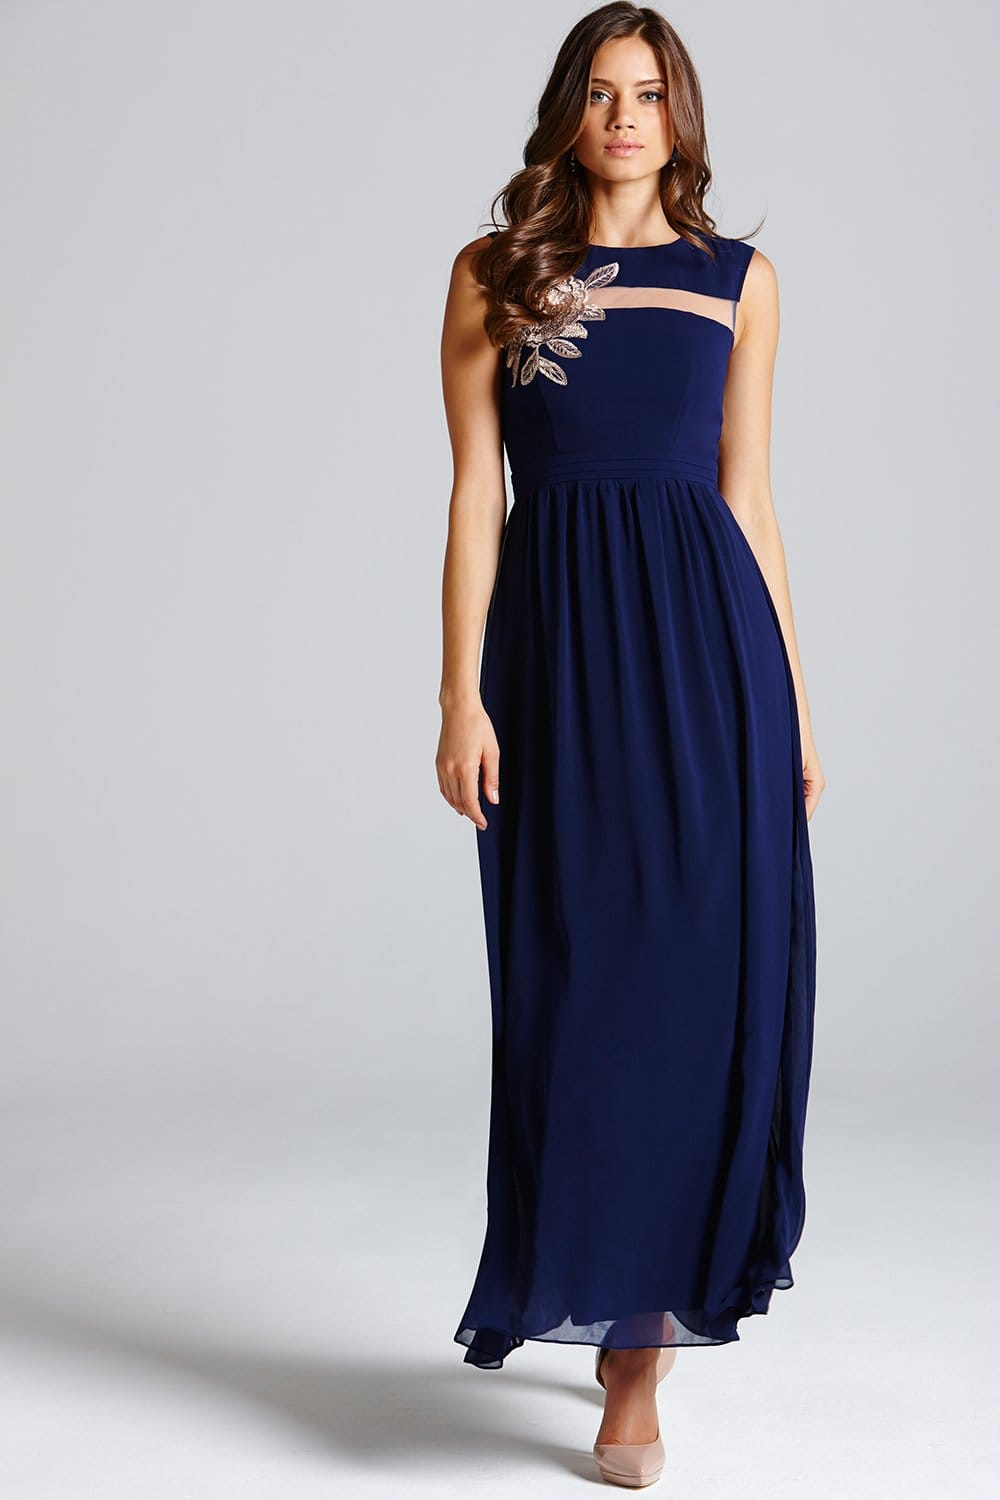 The Air of Romance Navy Blue Maxi Dress will have you feeling the love! A modified halter neckline and seamed bodice tops this elegant dress with a sweeping maxi skirt/5(1K).